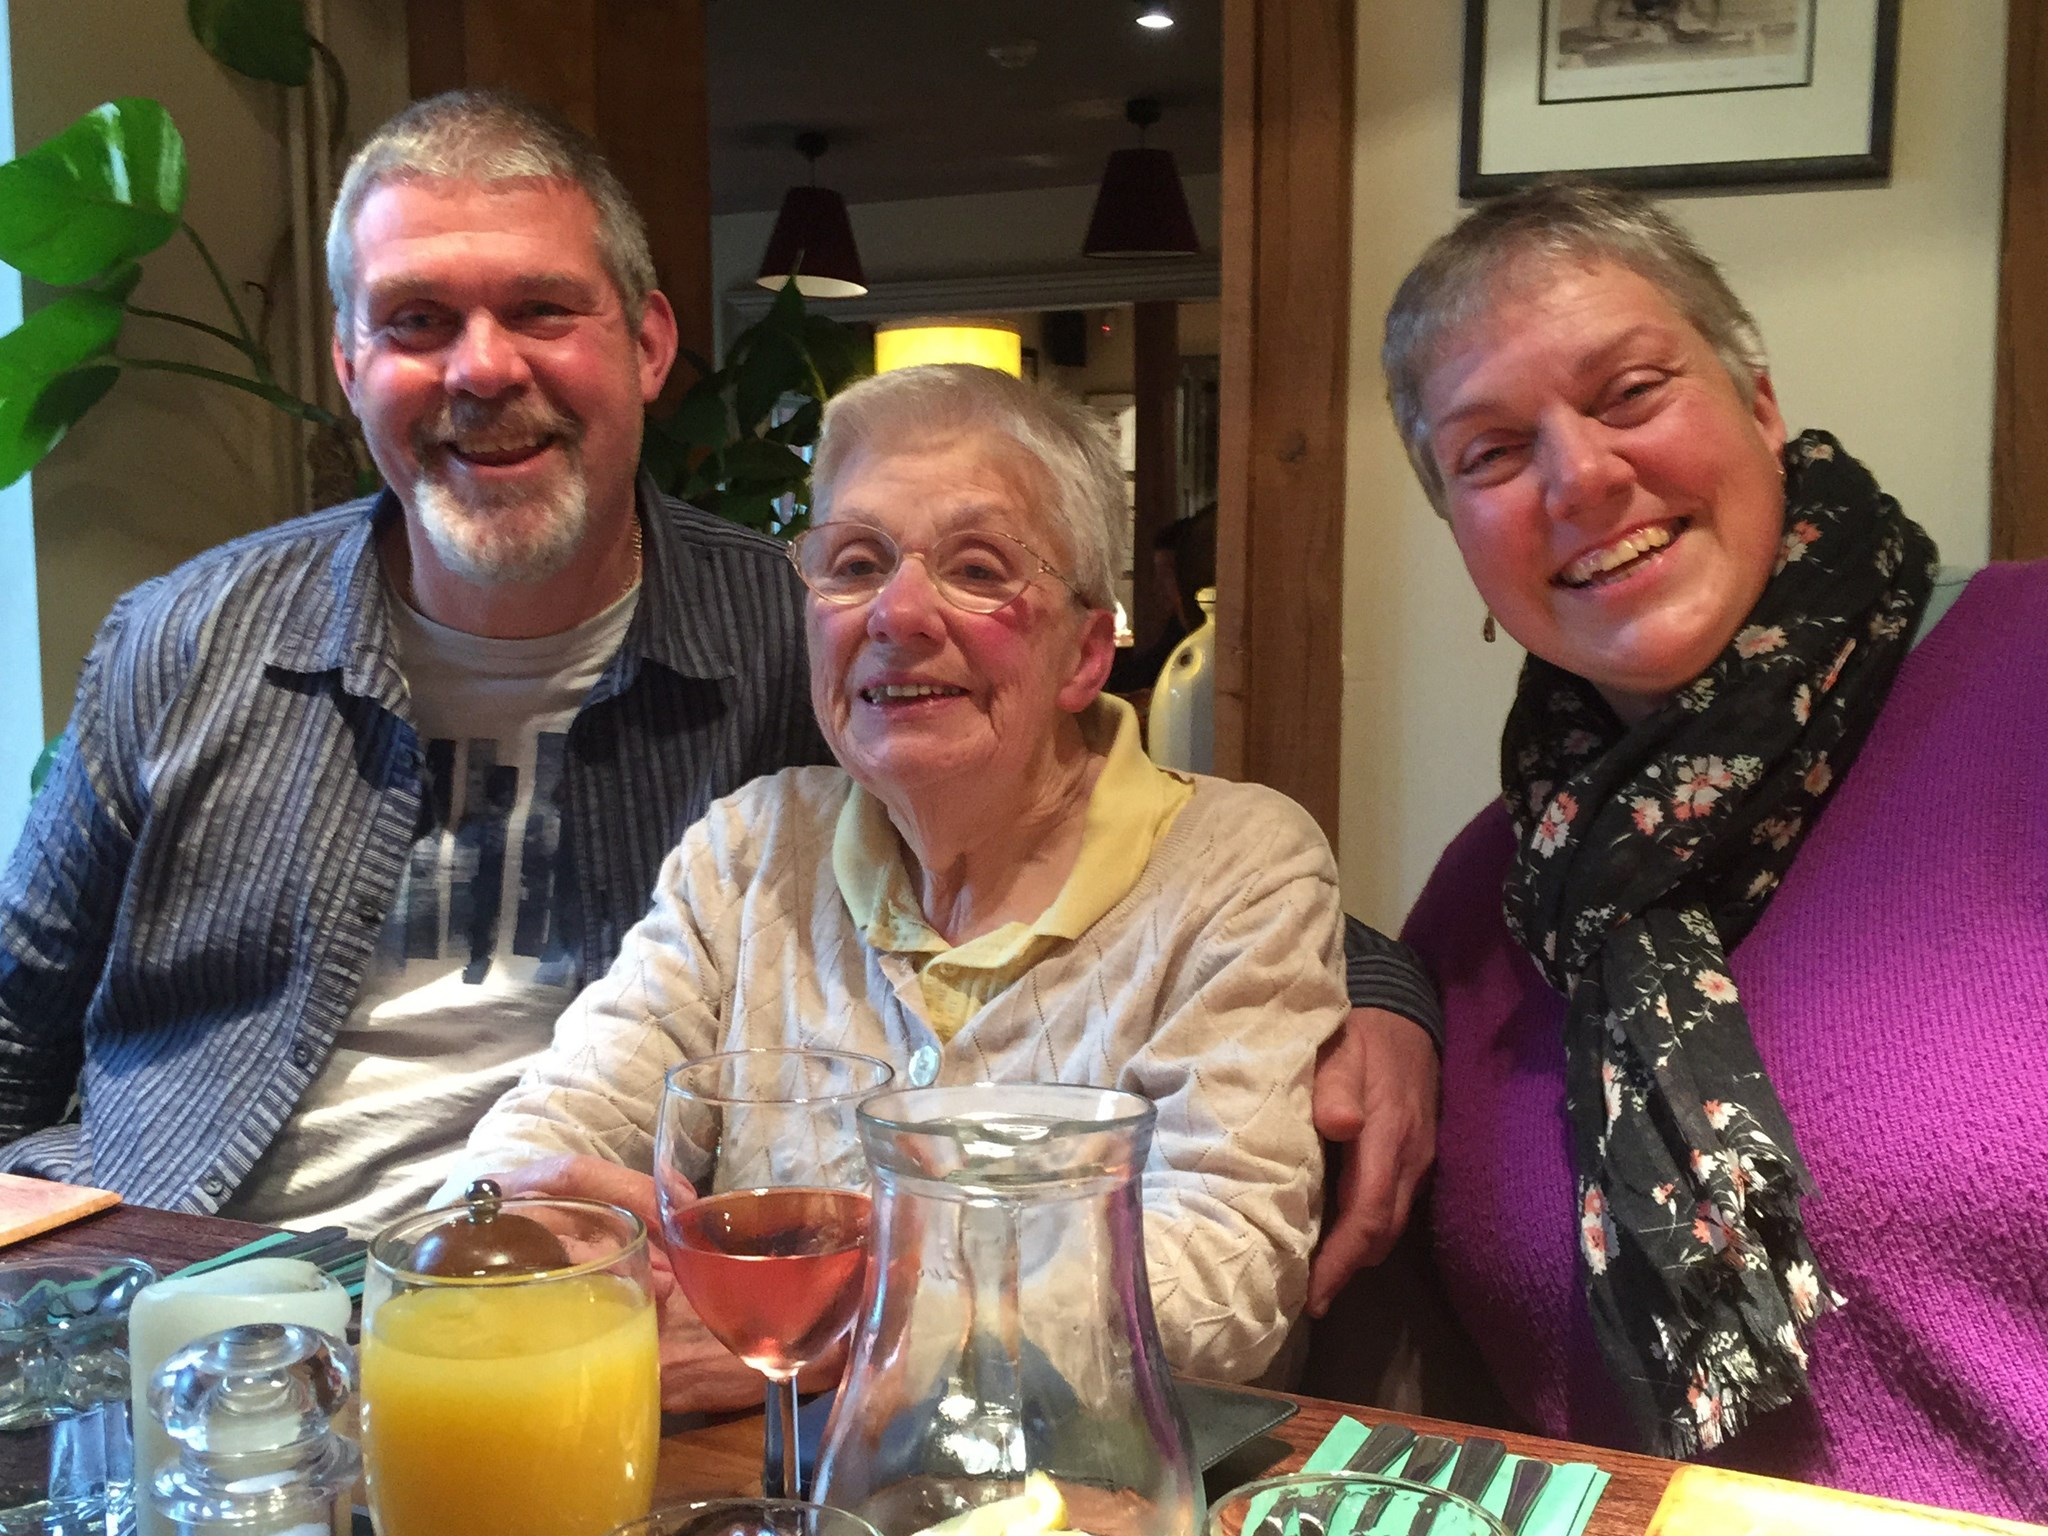 with Steve and Angie, 80th Birthday lunch - November 2014 at the Cricketers, Sarratt